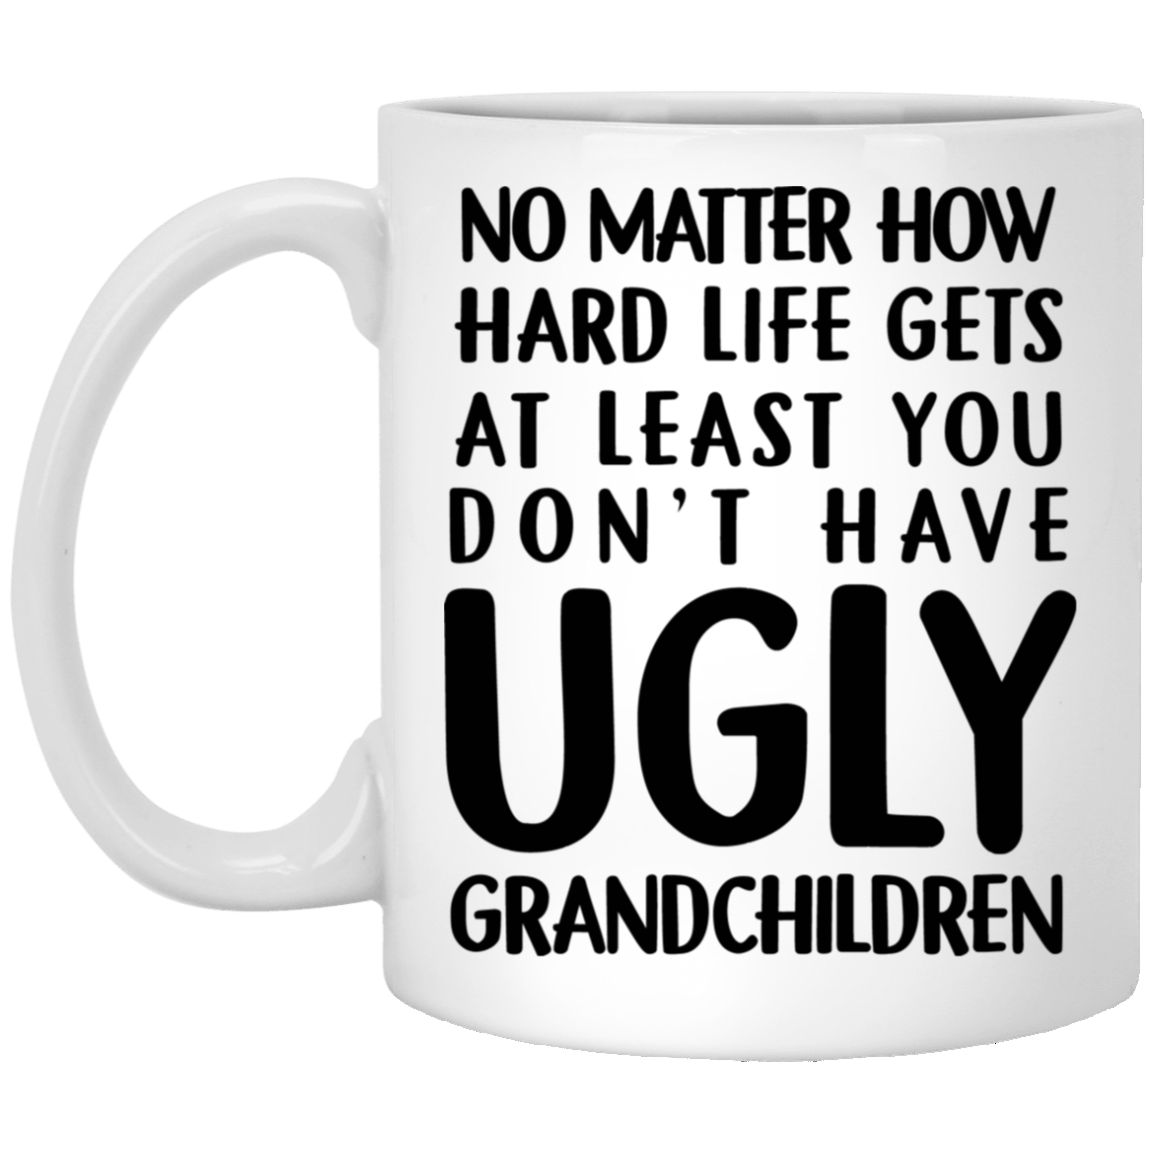 Gift for Grandma No matter how hard life gets at least you don't have UGLY GRANDCHILDREN Funny Quotes Coffee Mug 99promocode